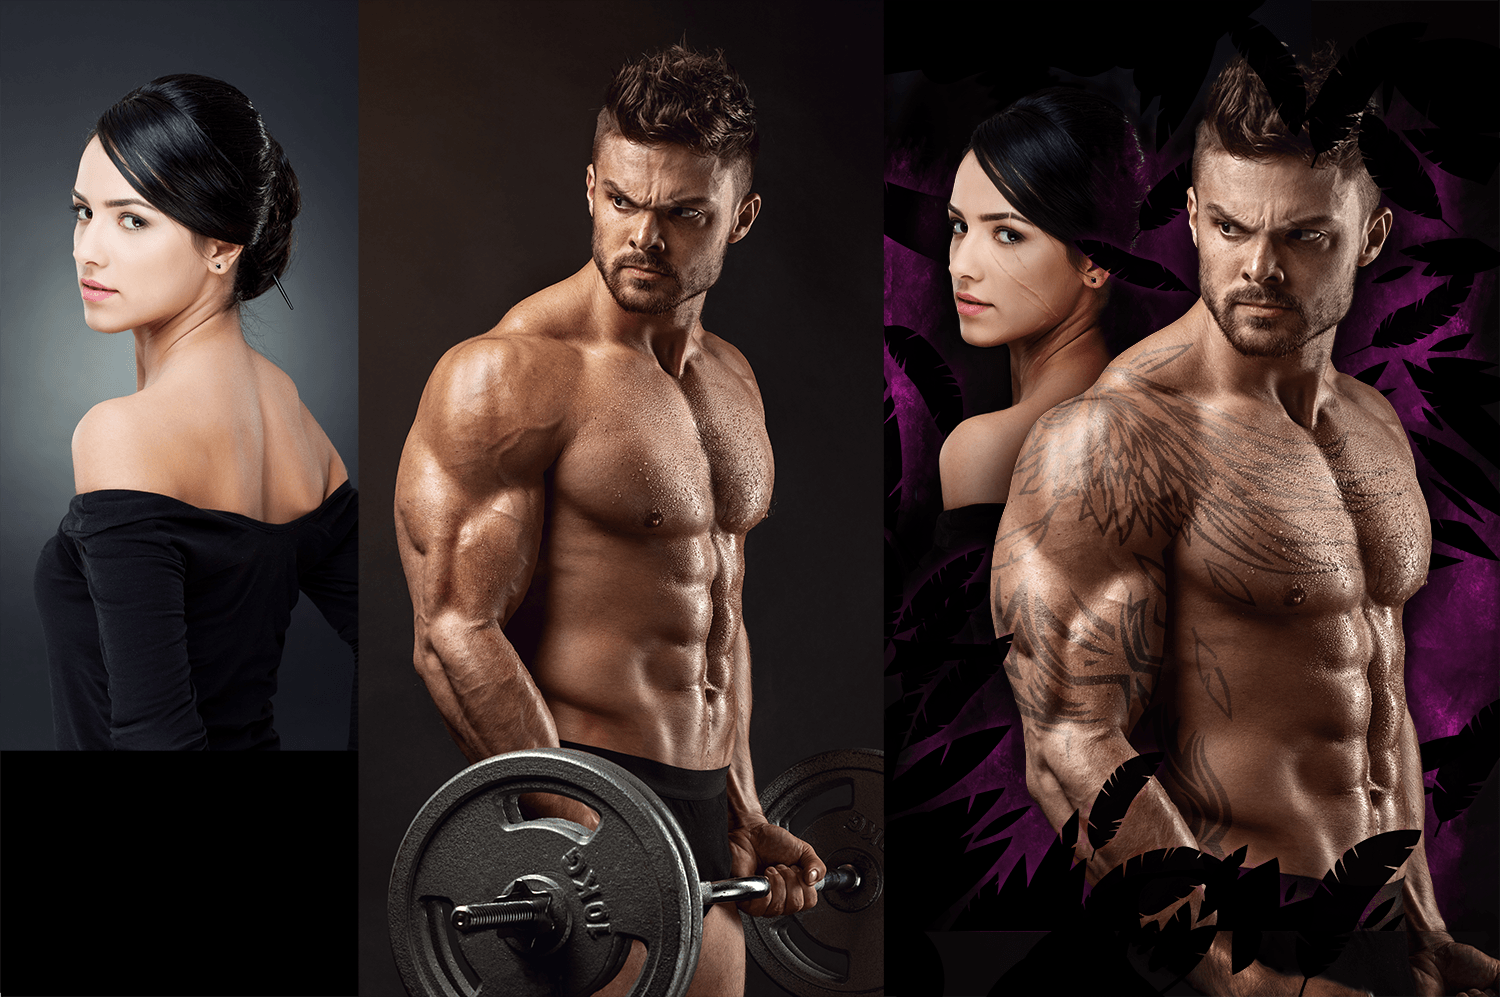 Photo merging, lighting correction, custom tattoos and scars, arm extension, stylized background